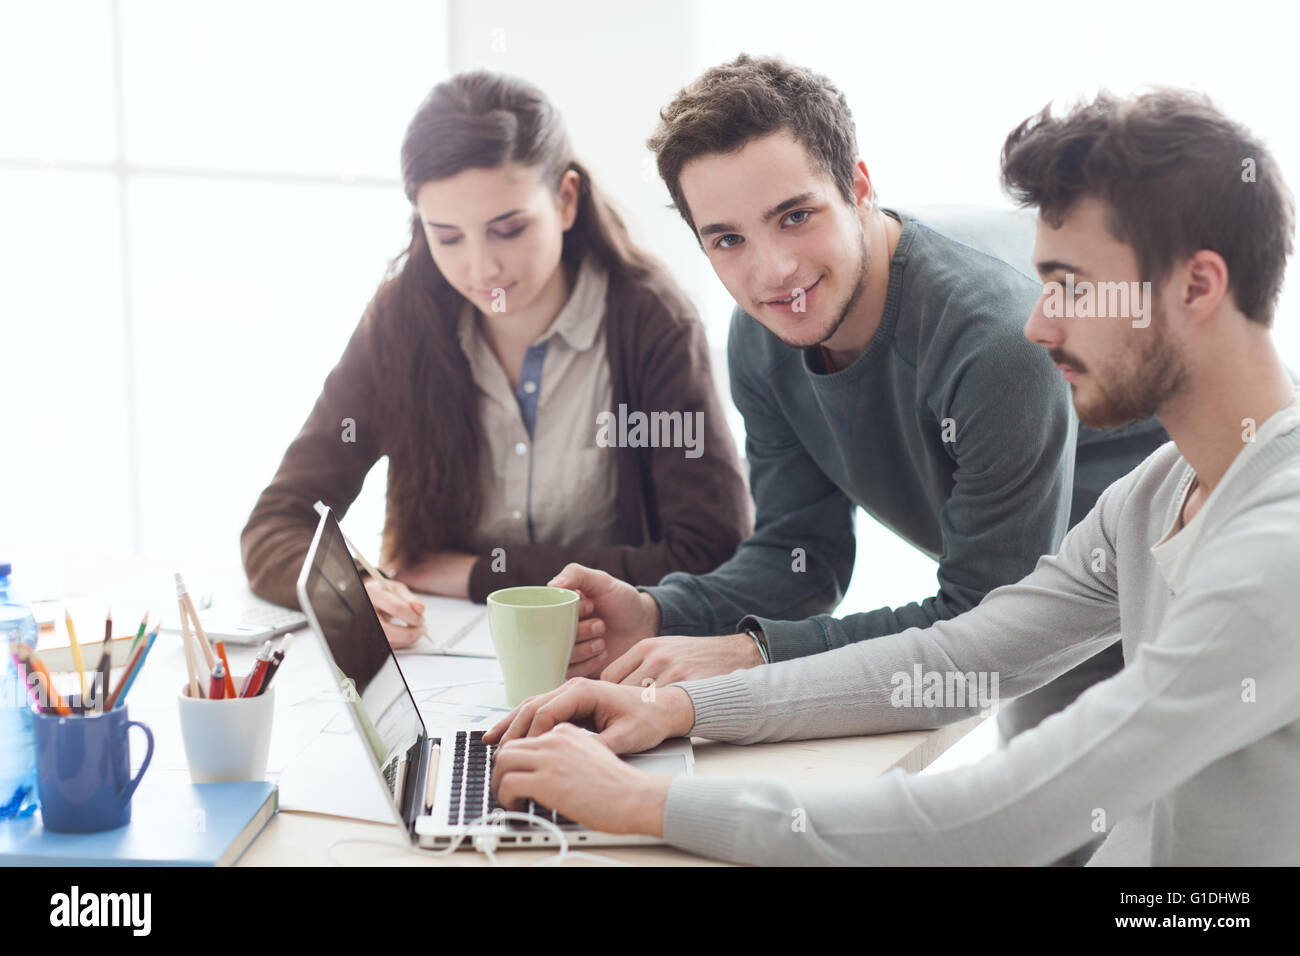 group of college students at desk using a laptop networking and group of college students at desk using a laptop networking and studying together education and learning concept